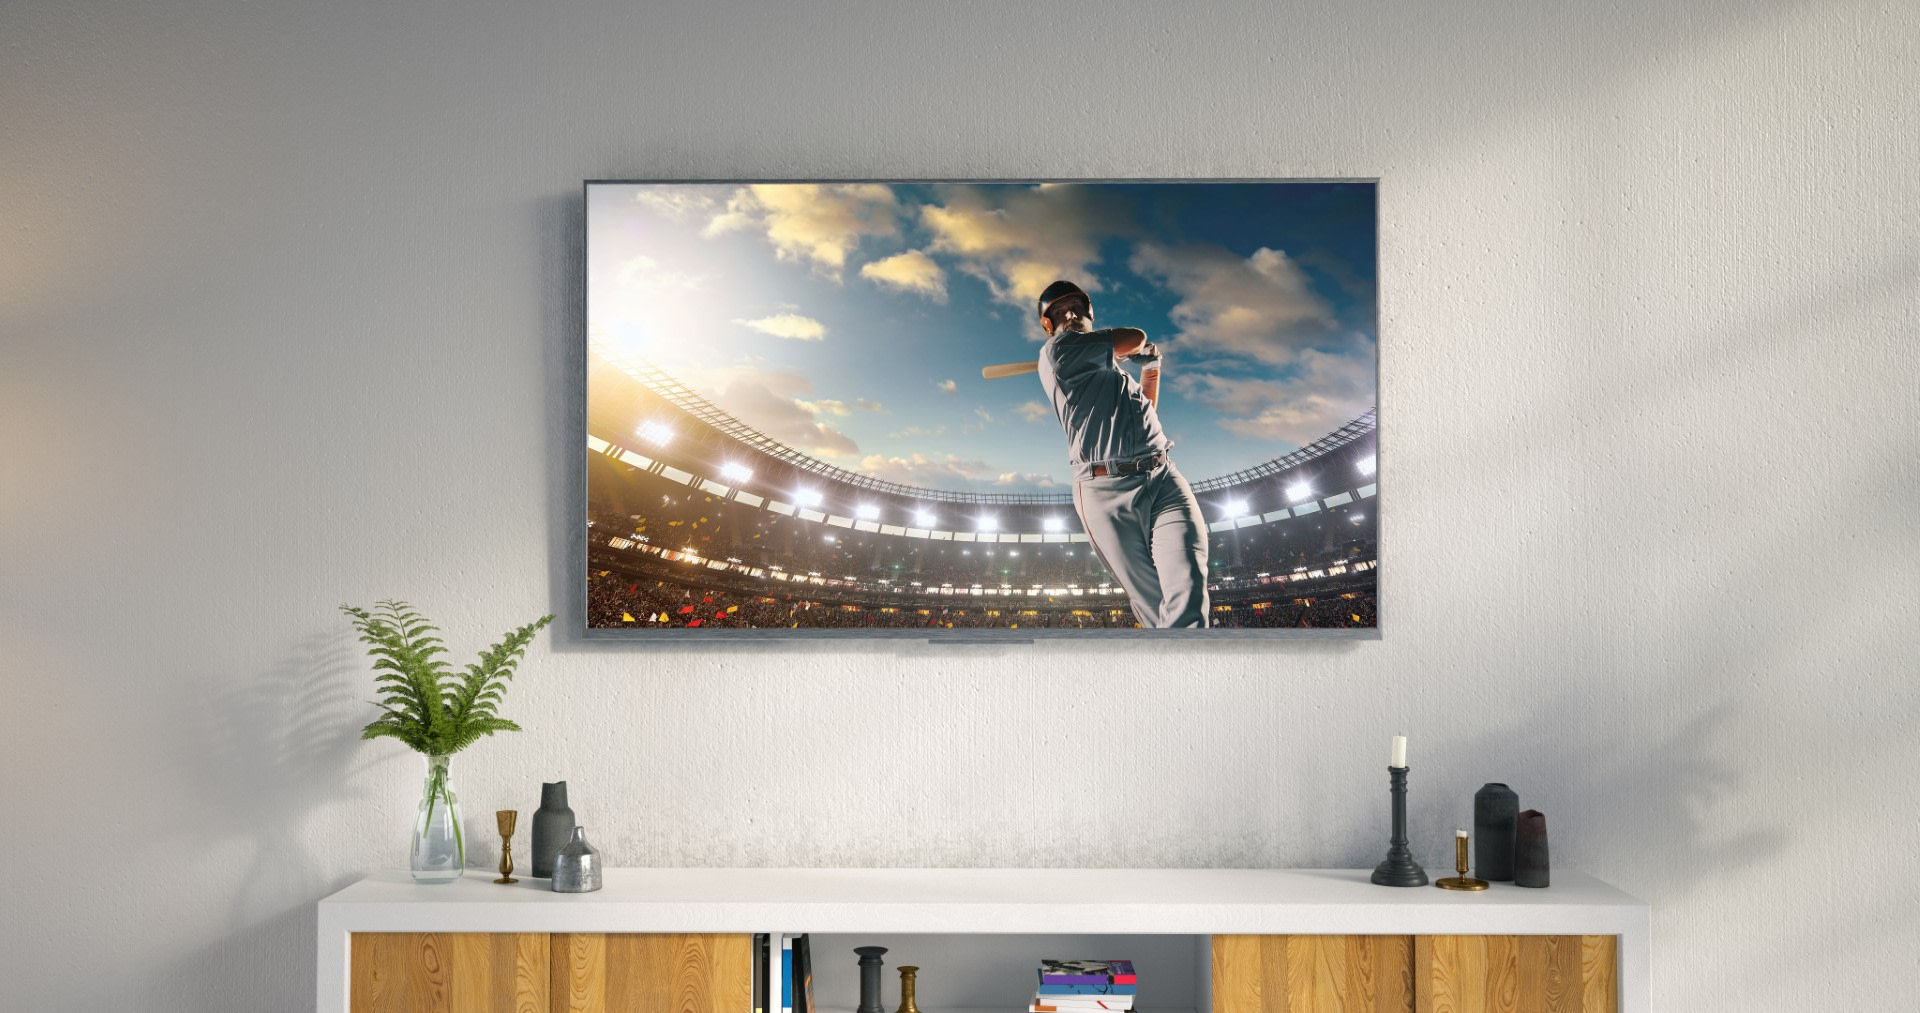 An image related to Top 43-Inch 60Hz TVs for 2019